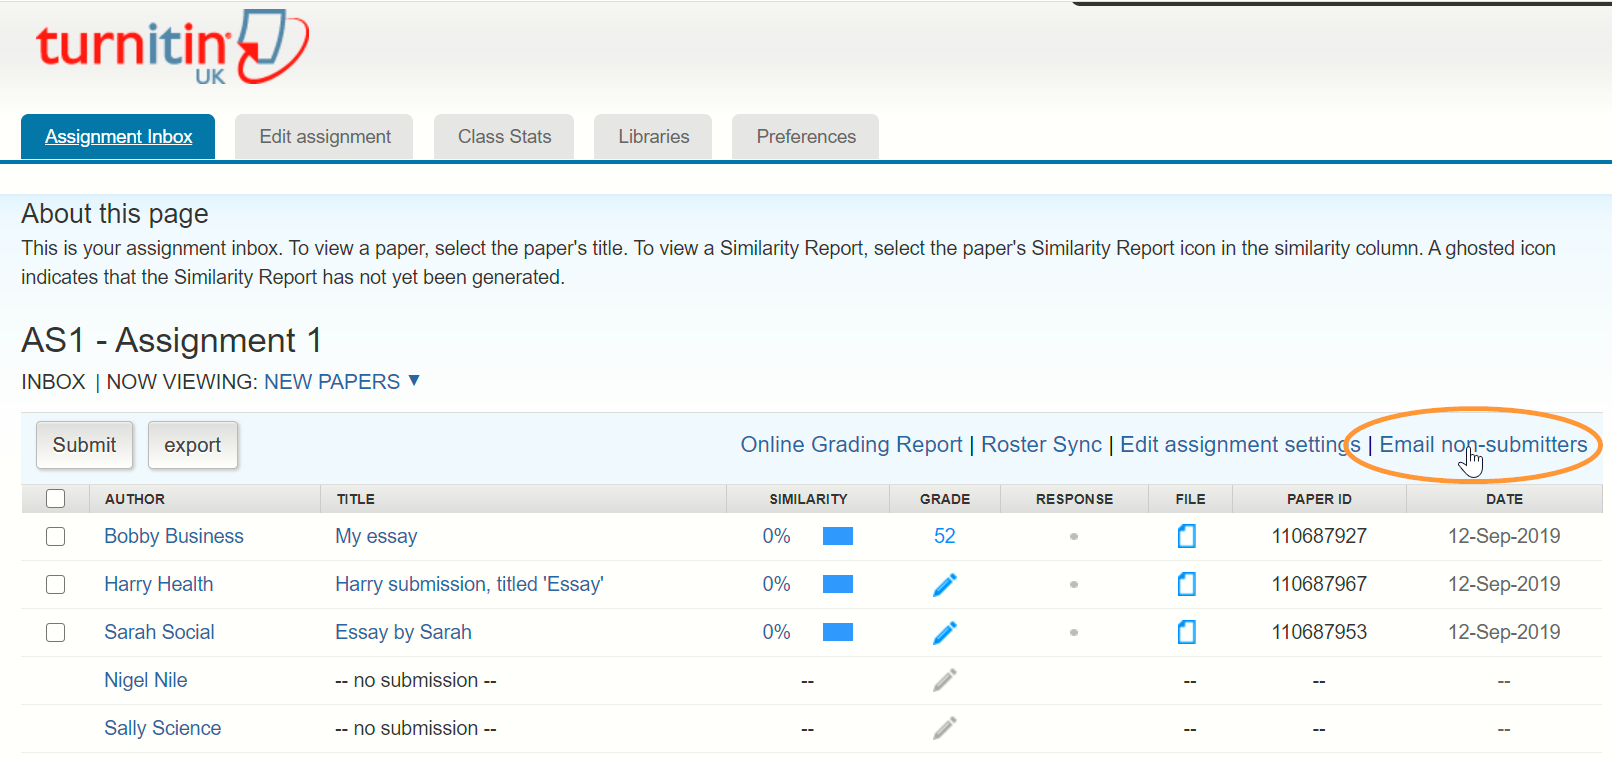 Find the email non-submitters link in the same menu as the roster sync link you have just used.